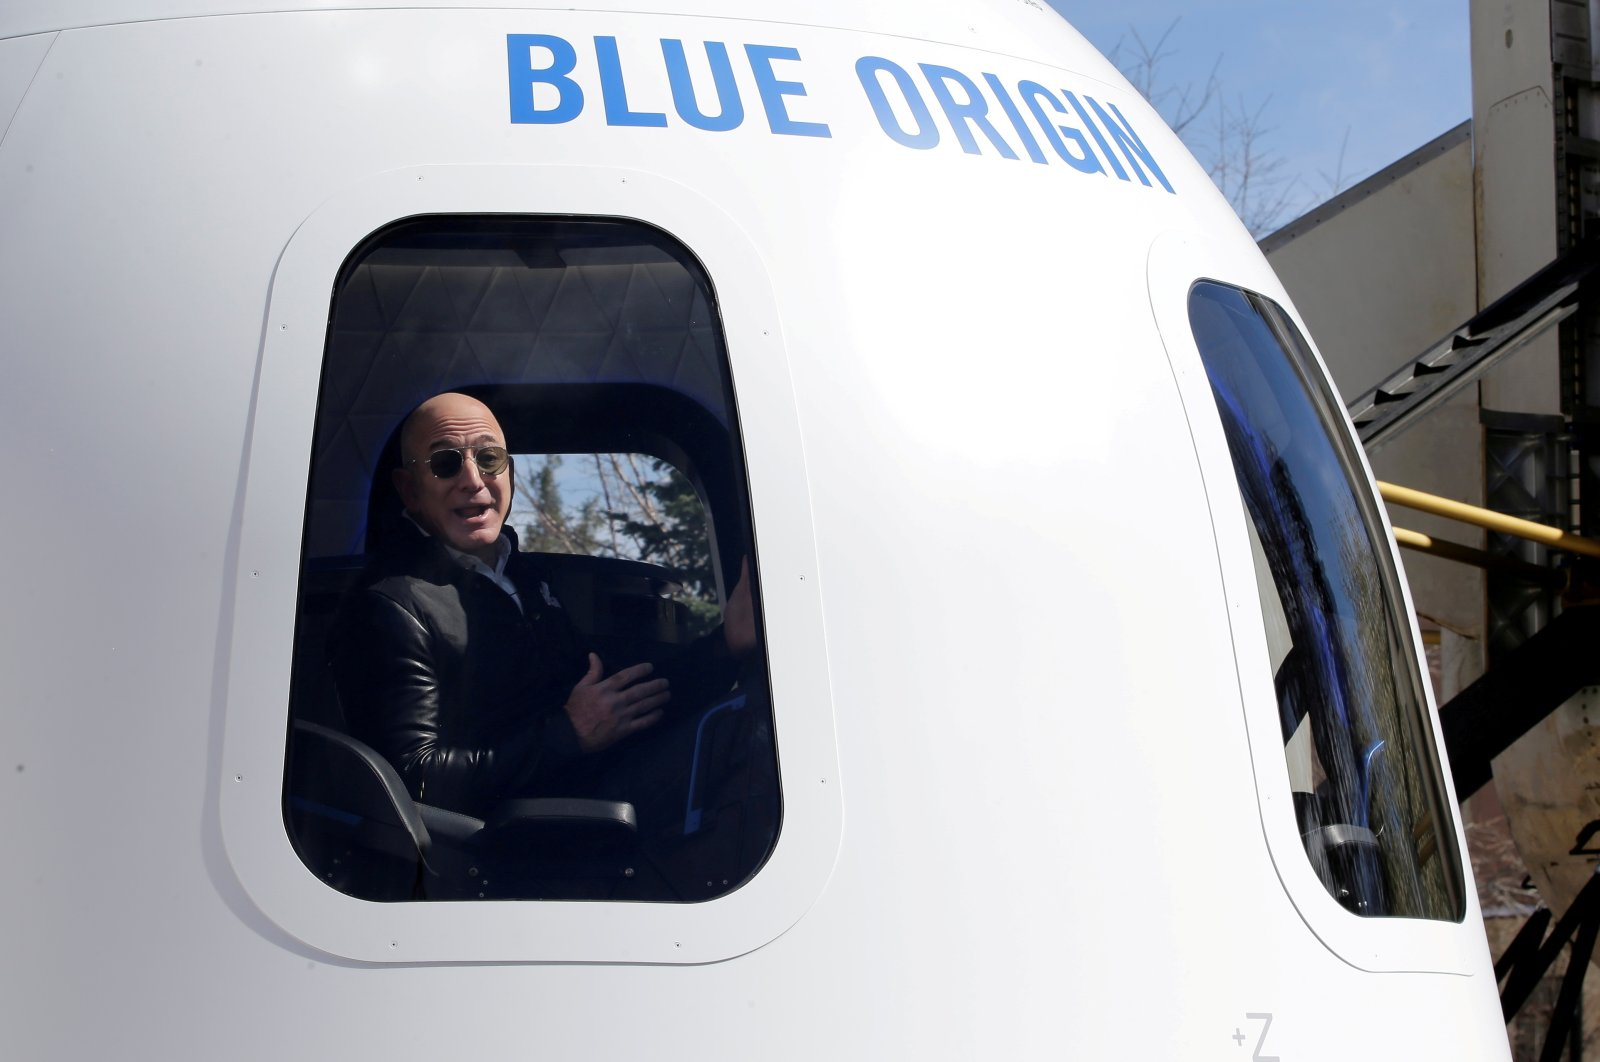 Amazon and Blue Origin founder Jeff Bezos addresses the media about the New Shepard rocket booster and Crew Capsule mockup at the 33rd Space Symposium in Colorado Springs, Colorado, U.S., April 5, 2017. (Reuters Photo)